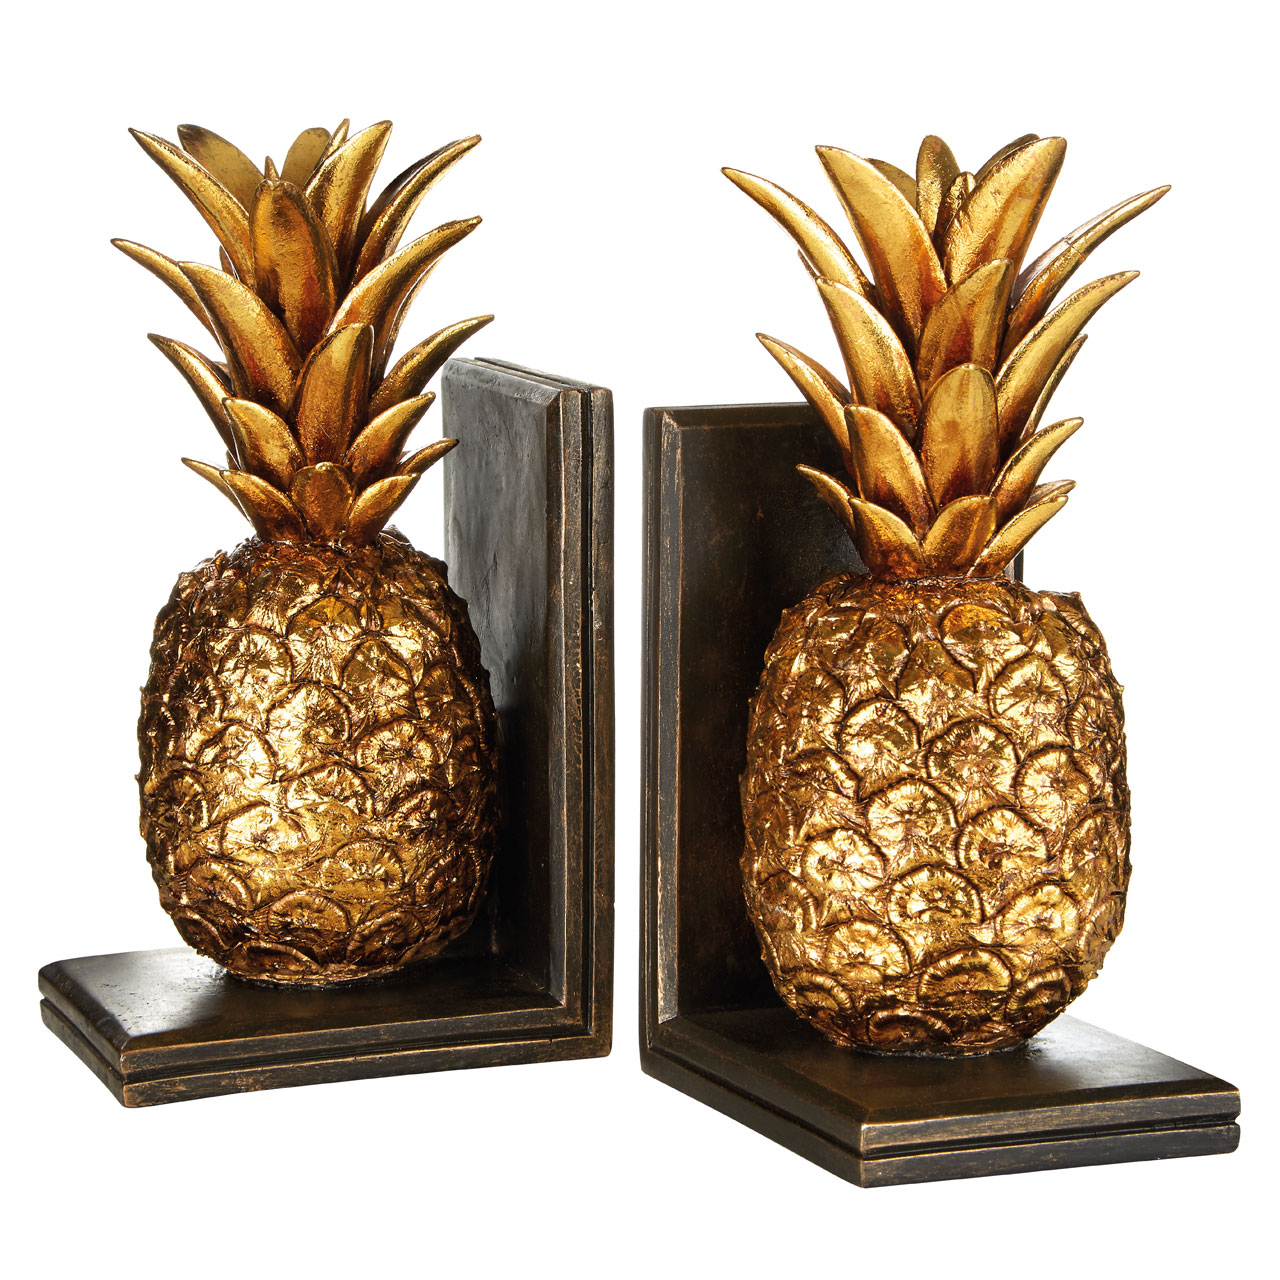 Prime Furnishing Set Of Pineapple Bookends - Gold Brown